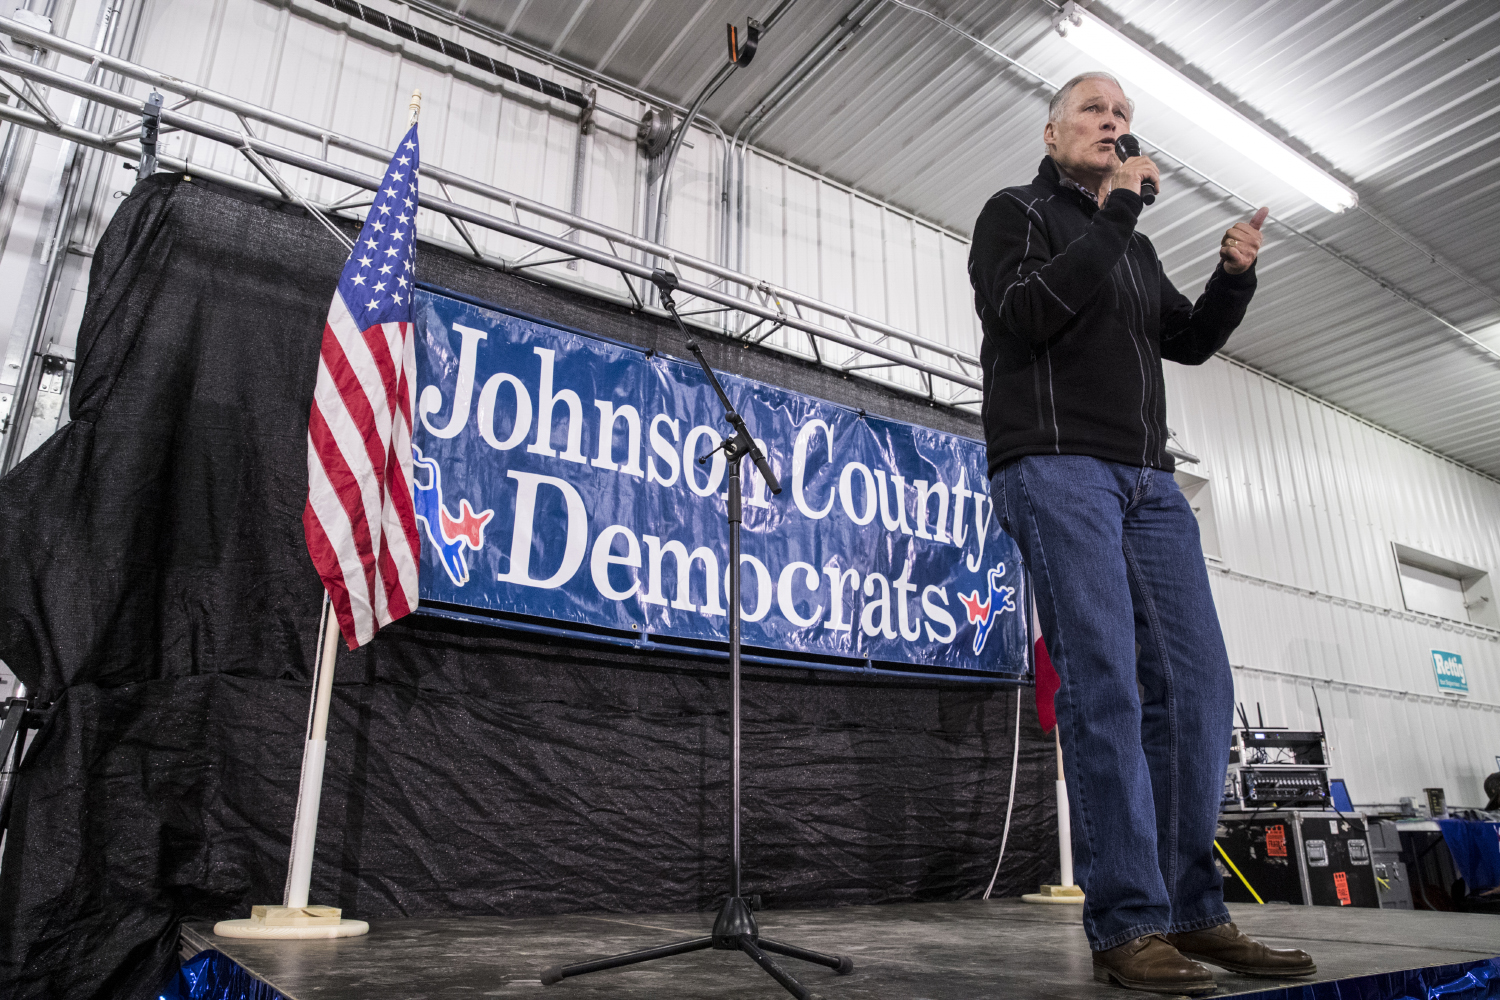 Washington+Governor+Jay+Inslee+speaks+during+the+Johnson+County+Democratic+Party+Fall+Barbeques+at+the+Johnson+County+Fairgrounds+on+Sunday+Oct.+14%2C+2018.+